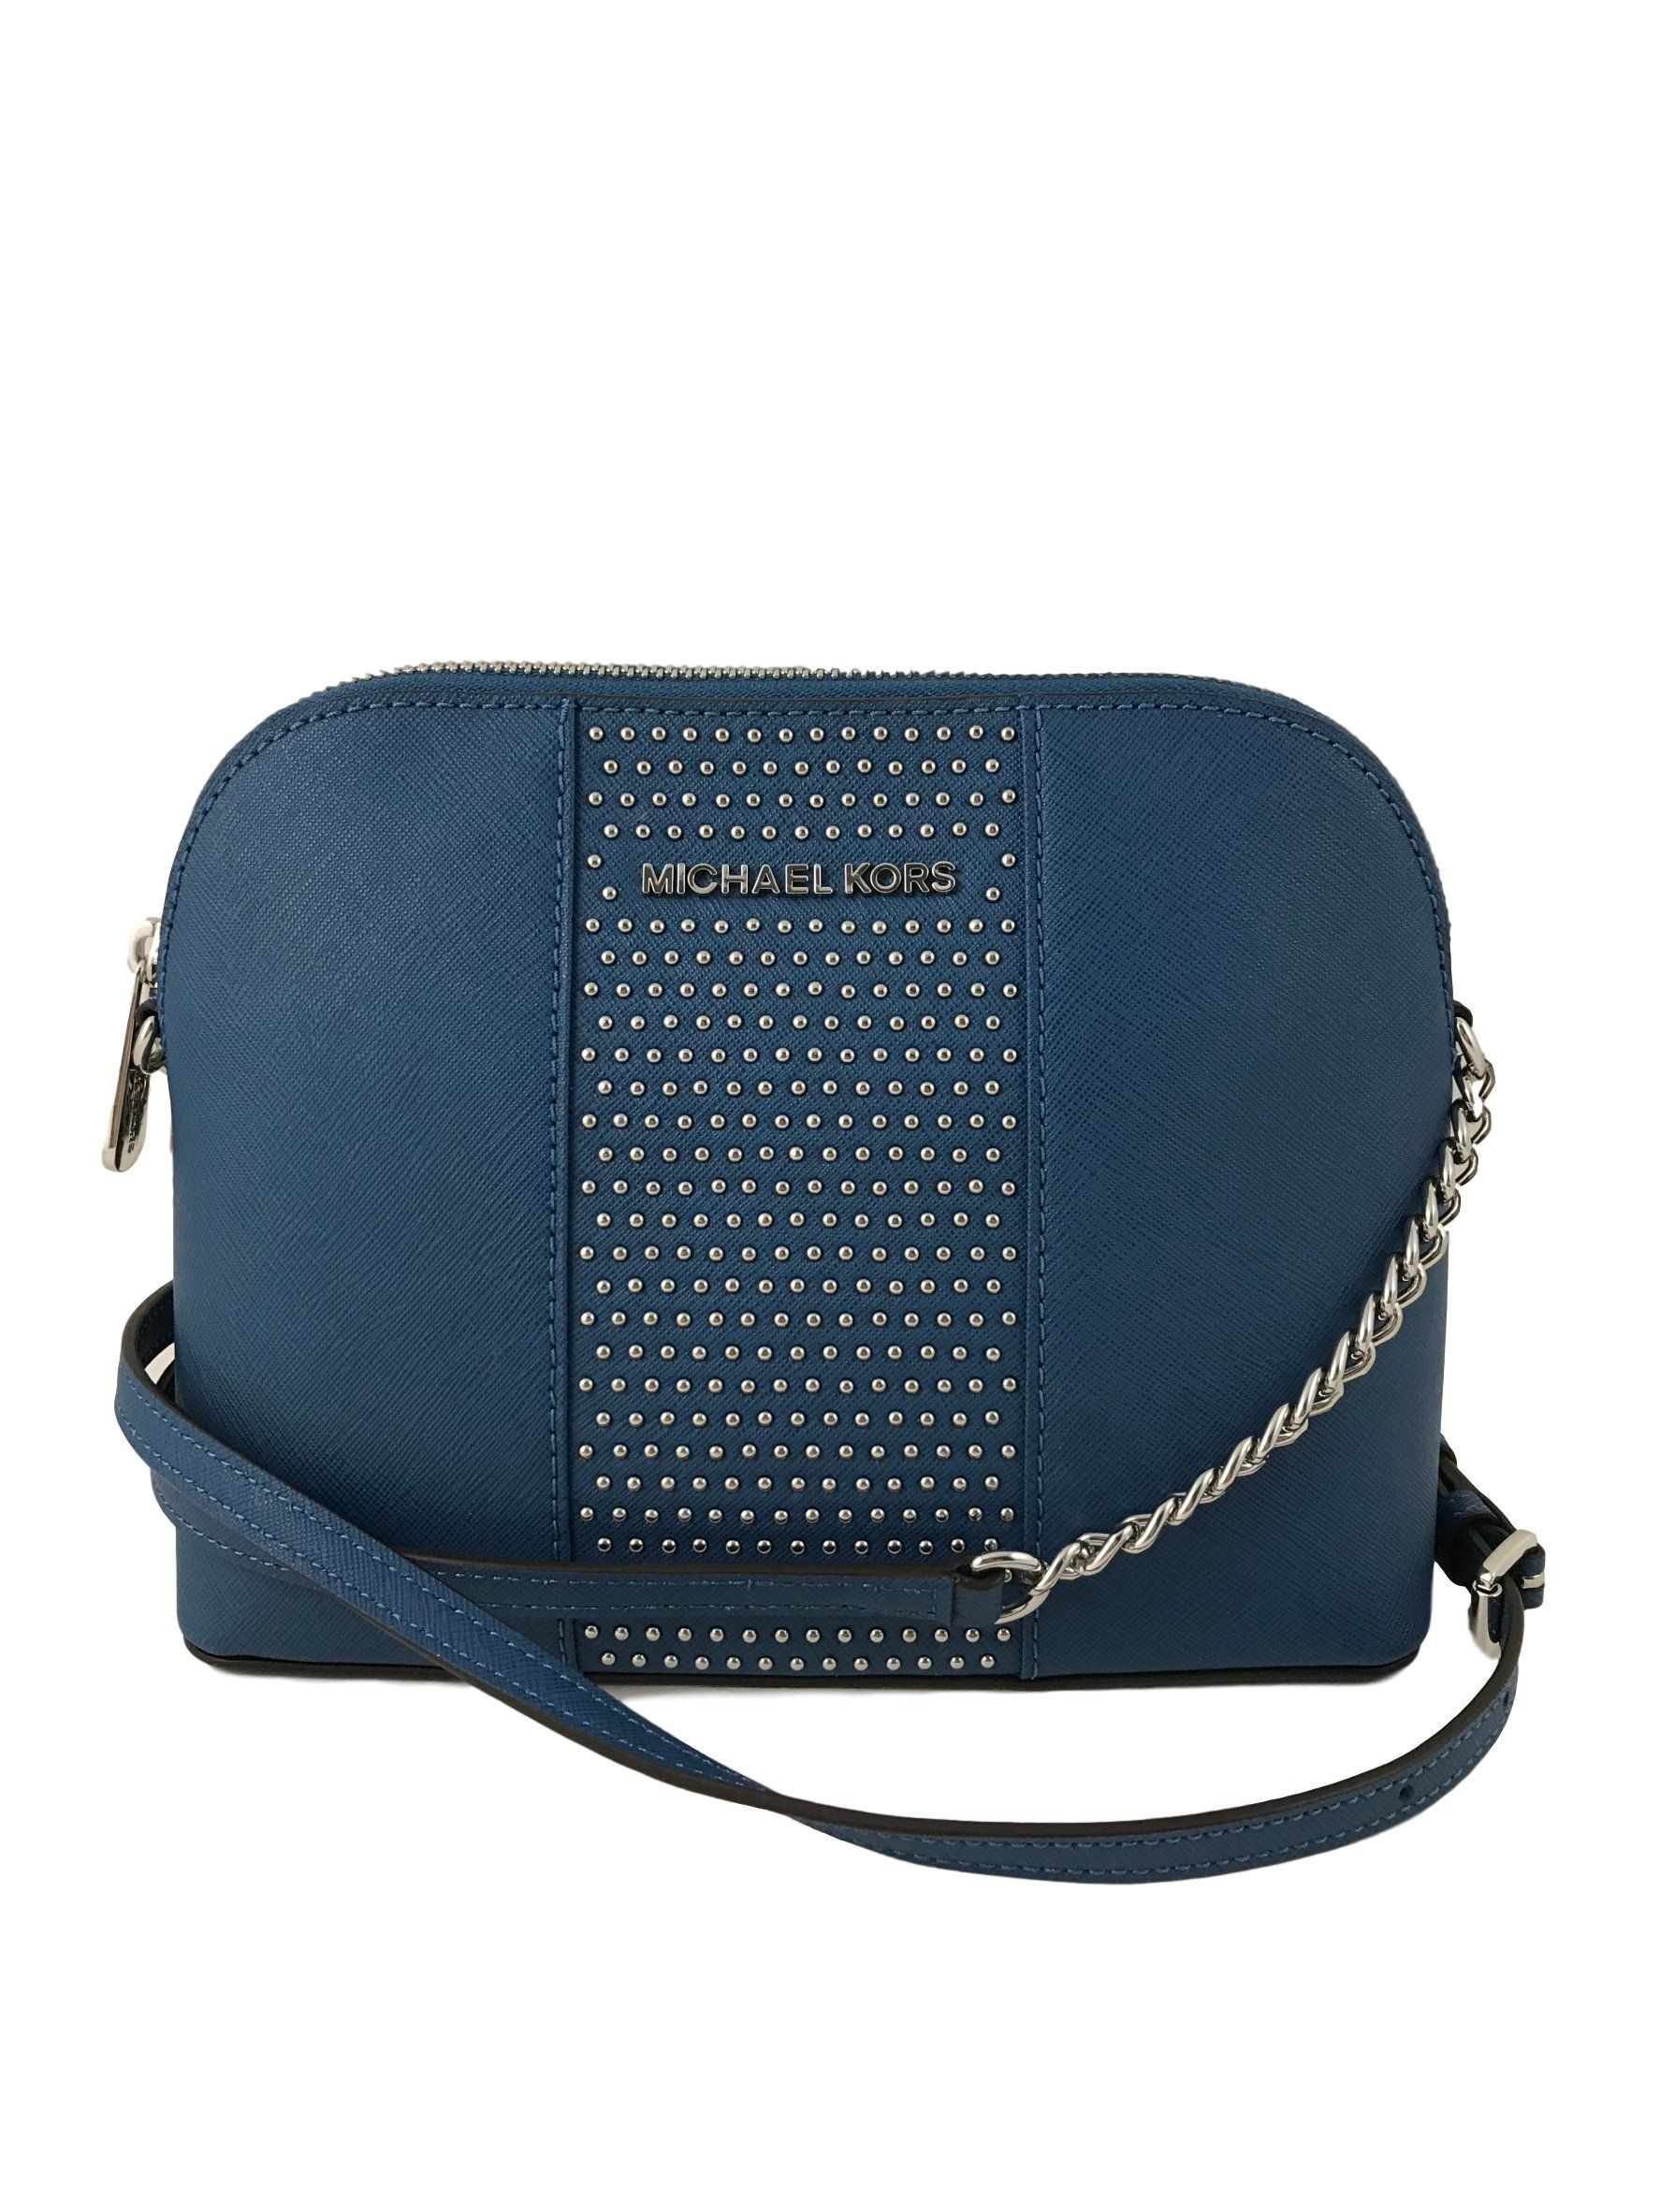 520c9f293d5b ... wholesale michael kors micro stud cindy lg dome crossbody bag in steel  blue steel blue ac469